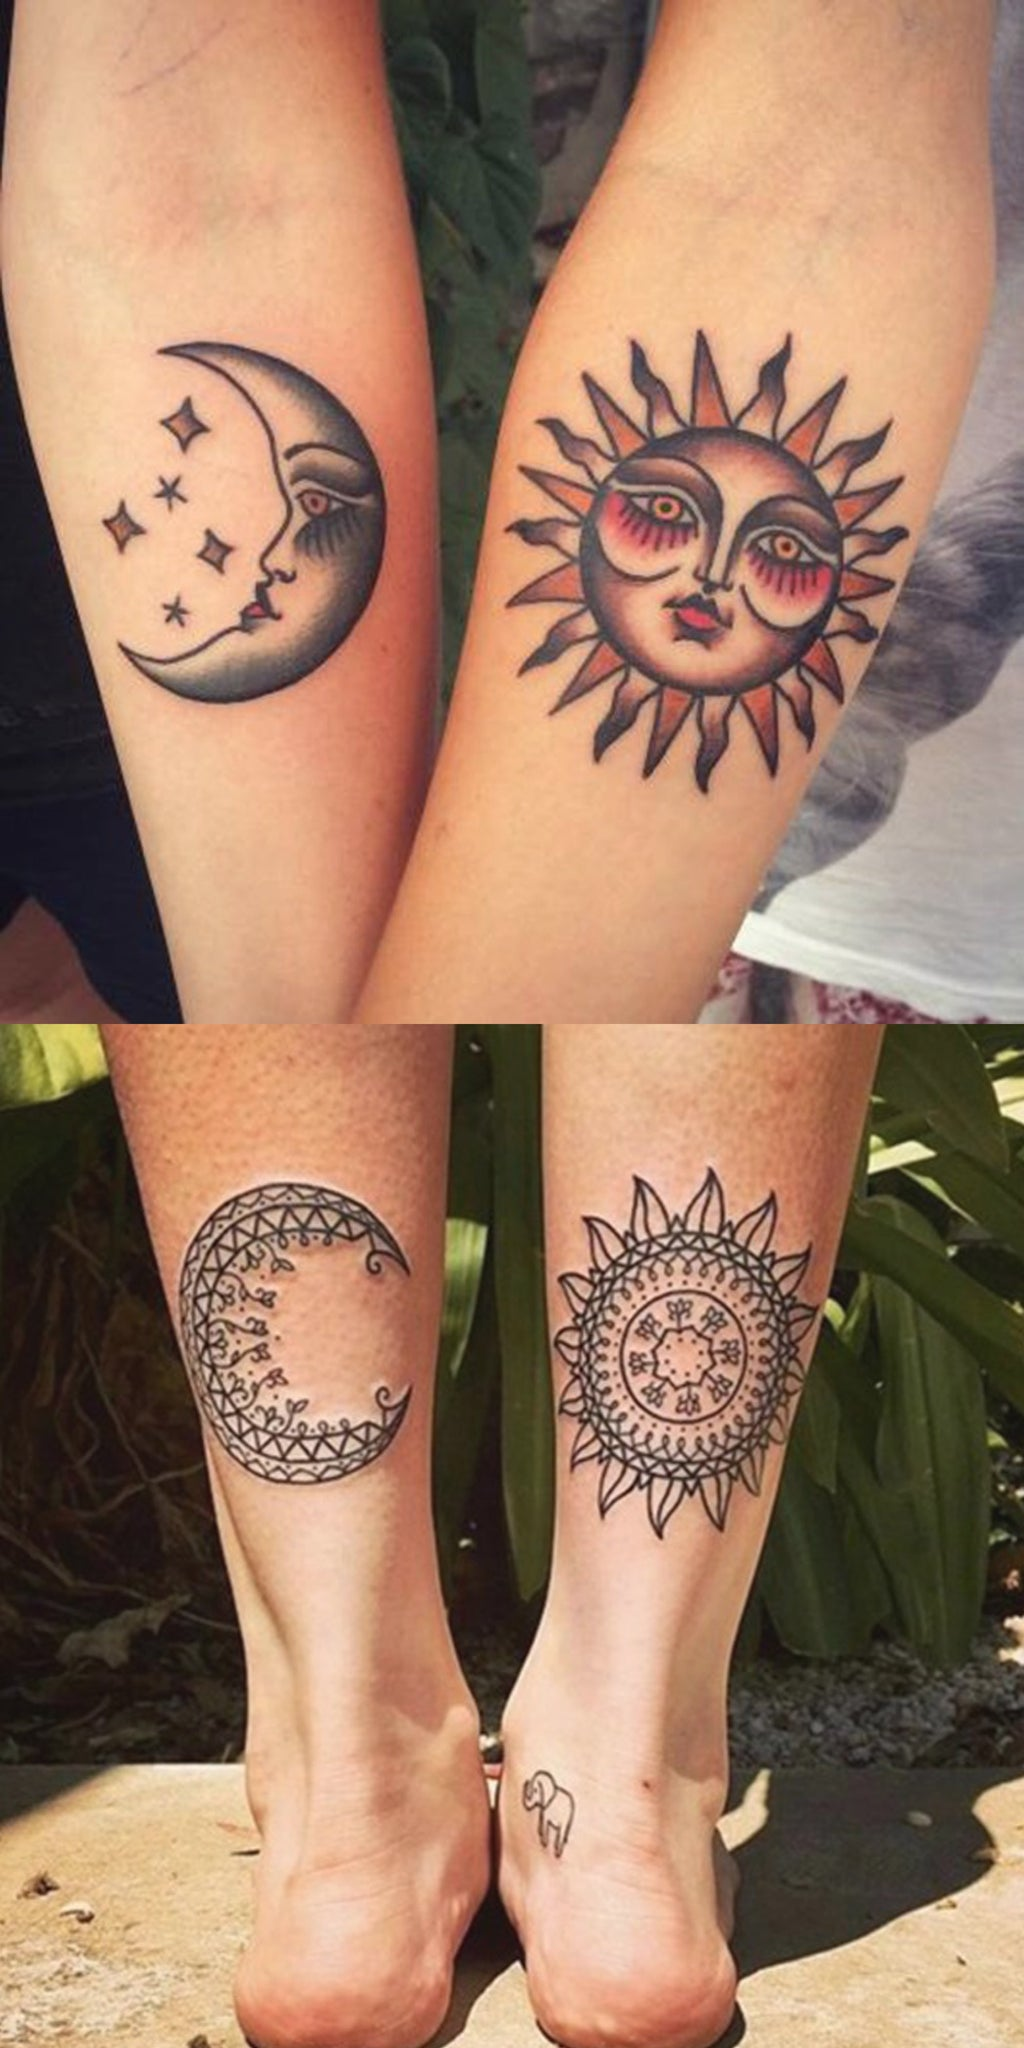 Cool Tribal Sun & Moon Matching Tattoo Ideas fo Best Friends - Bohemian Boho Crescent Forearm Ankle Tat for Couples -  sol y luna que coinciden con las ideas del tatuaje del antebrazo para los mejores amigos - www.MyBodiArt.com